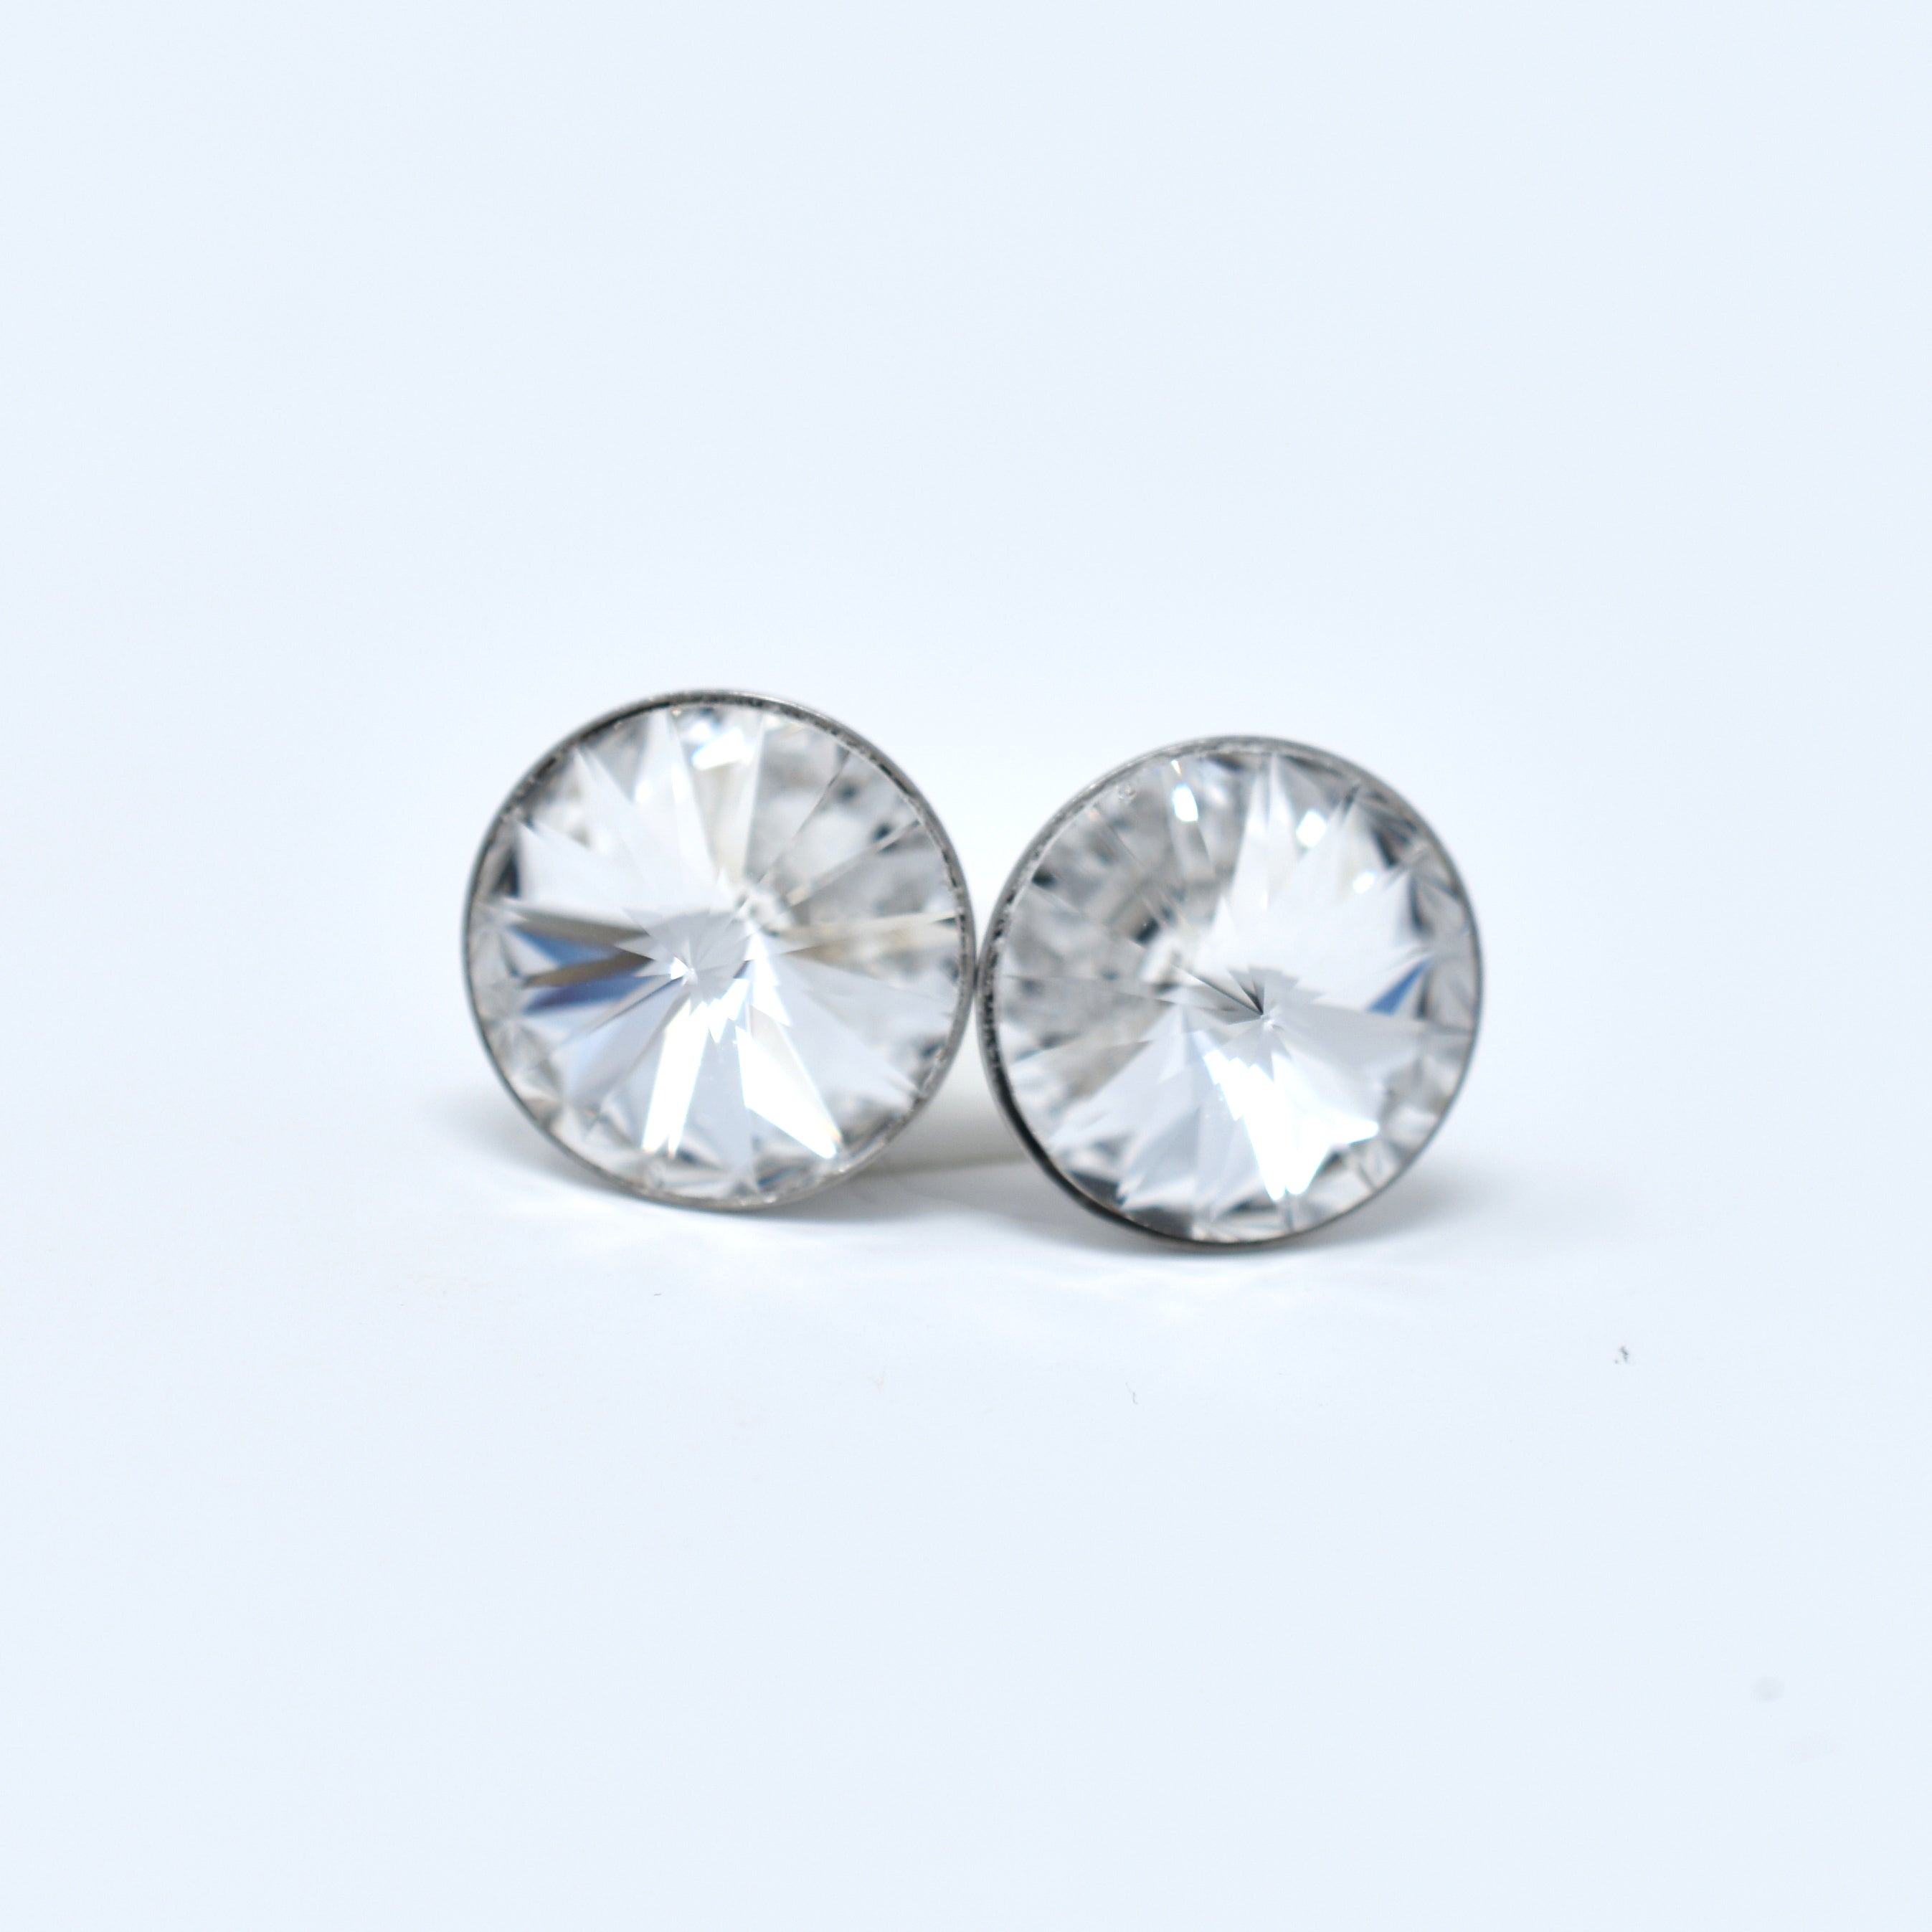 Stainless Steel Swarovski Studs - 12mm